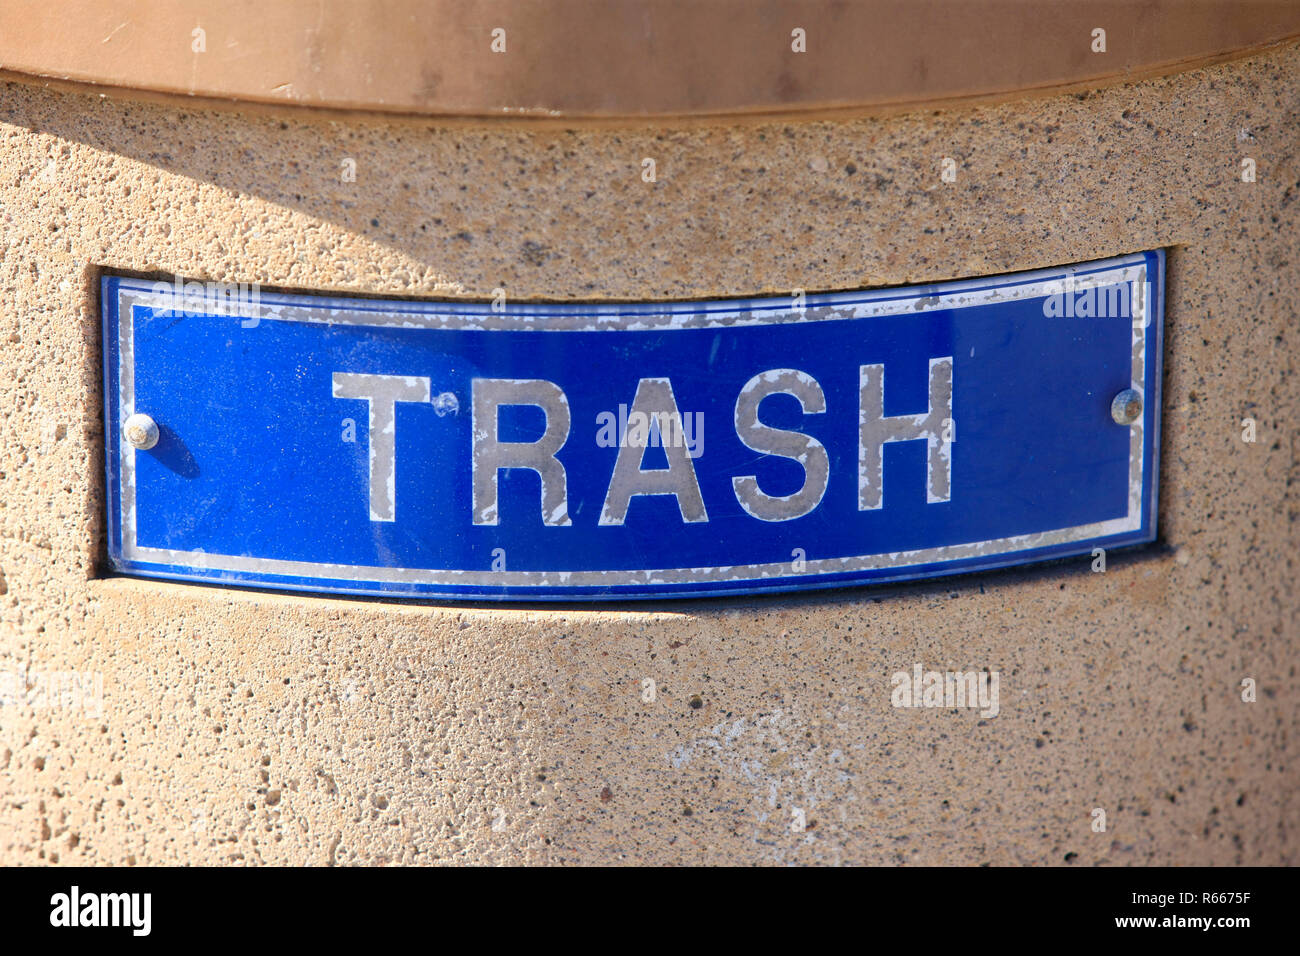 Close up of a TRASH sign on a trash can - Stock Image